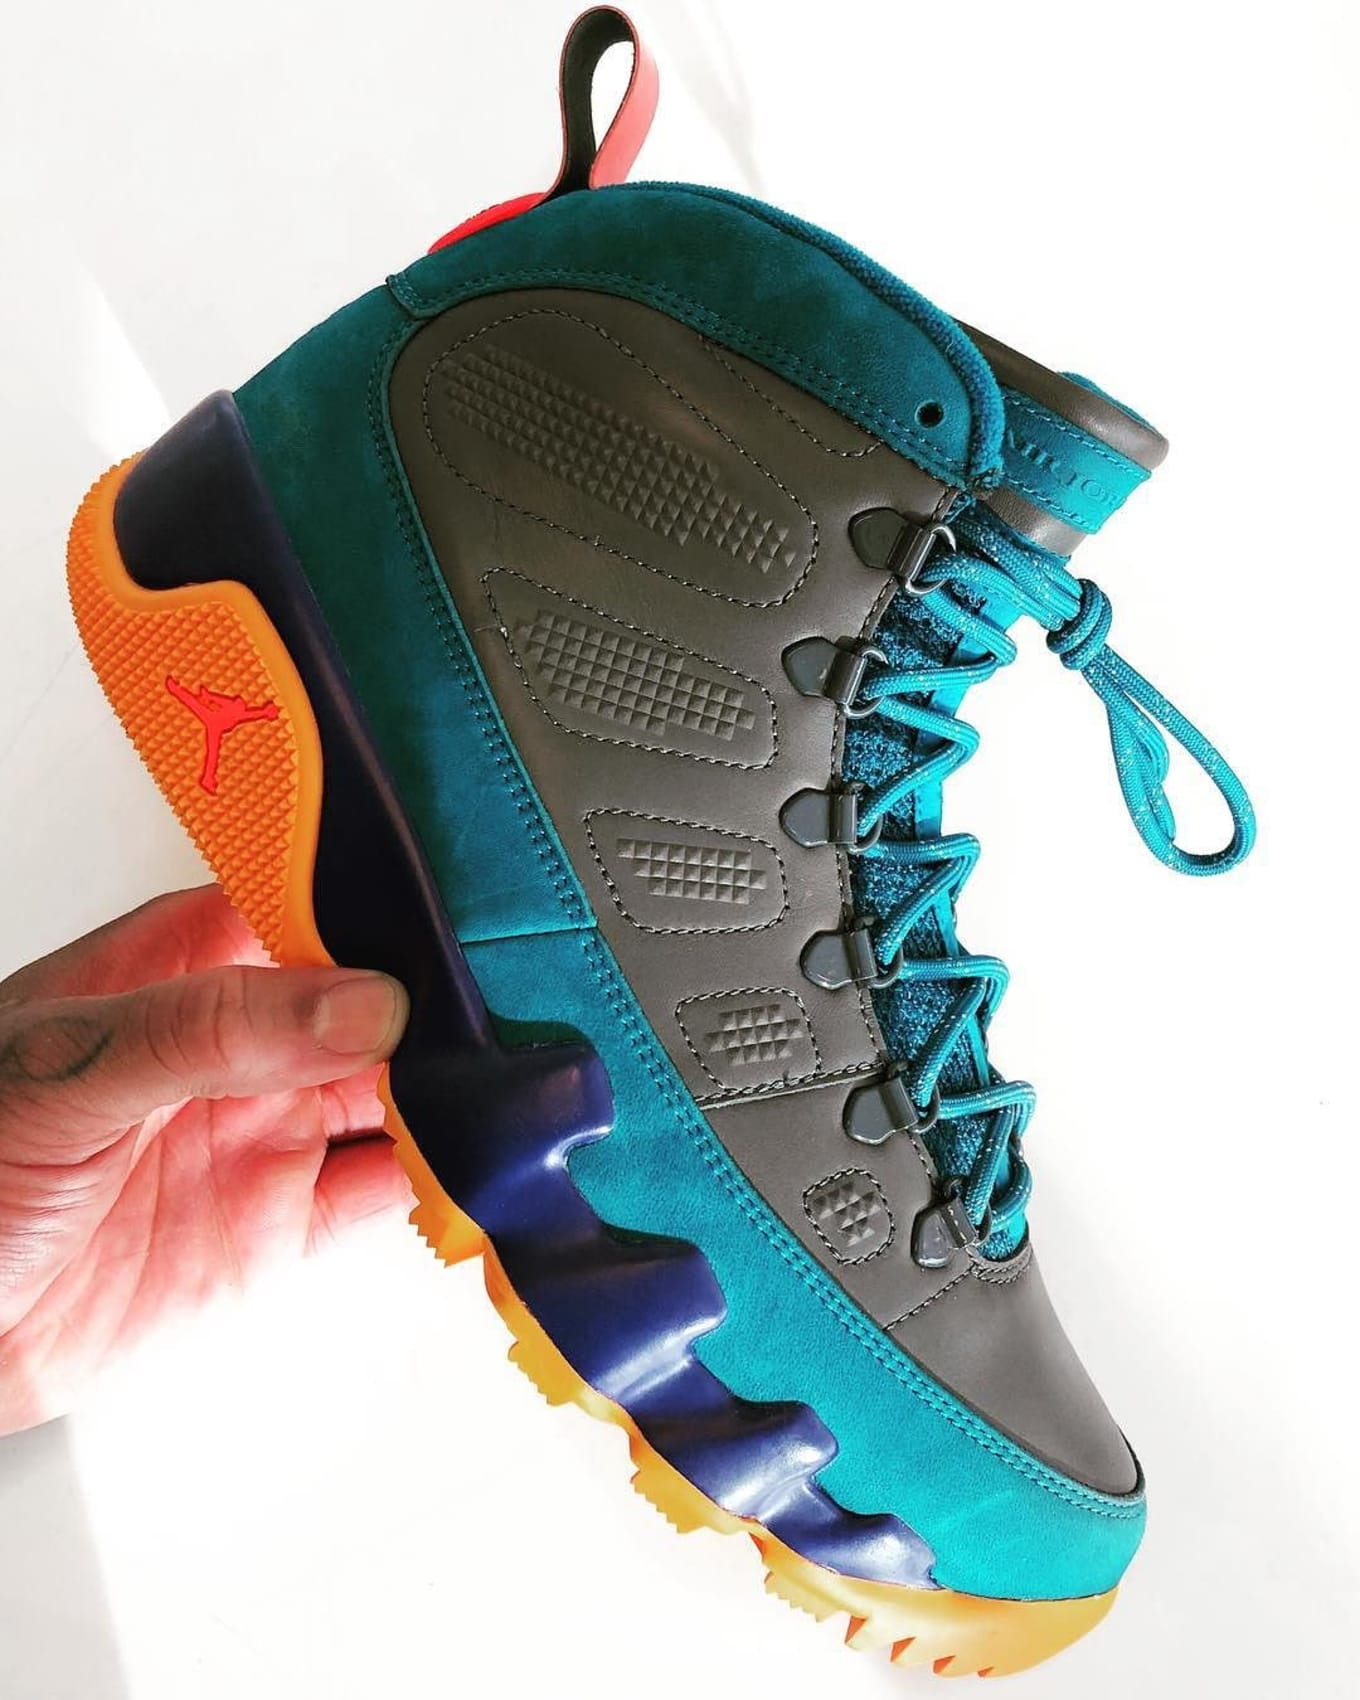 Air Jordan 9 NRG Boot Multicolor Sample  8e4c3386ad